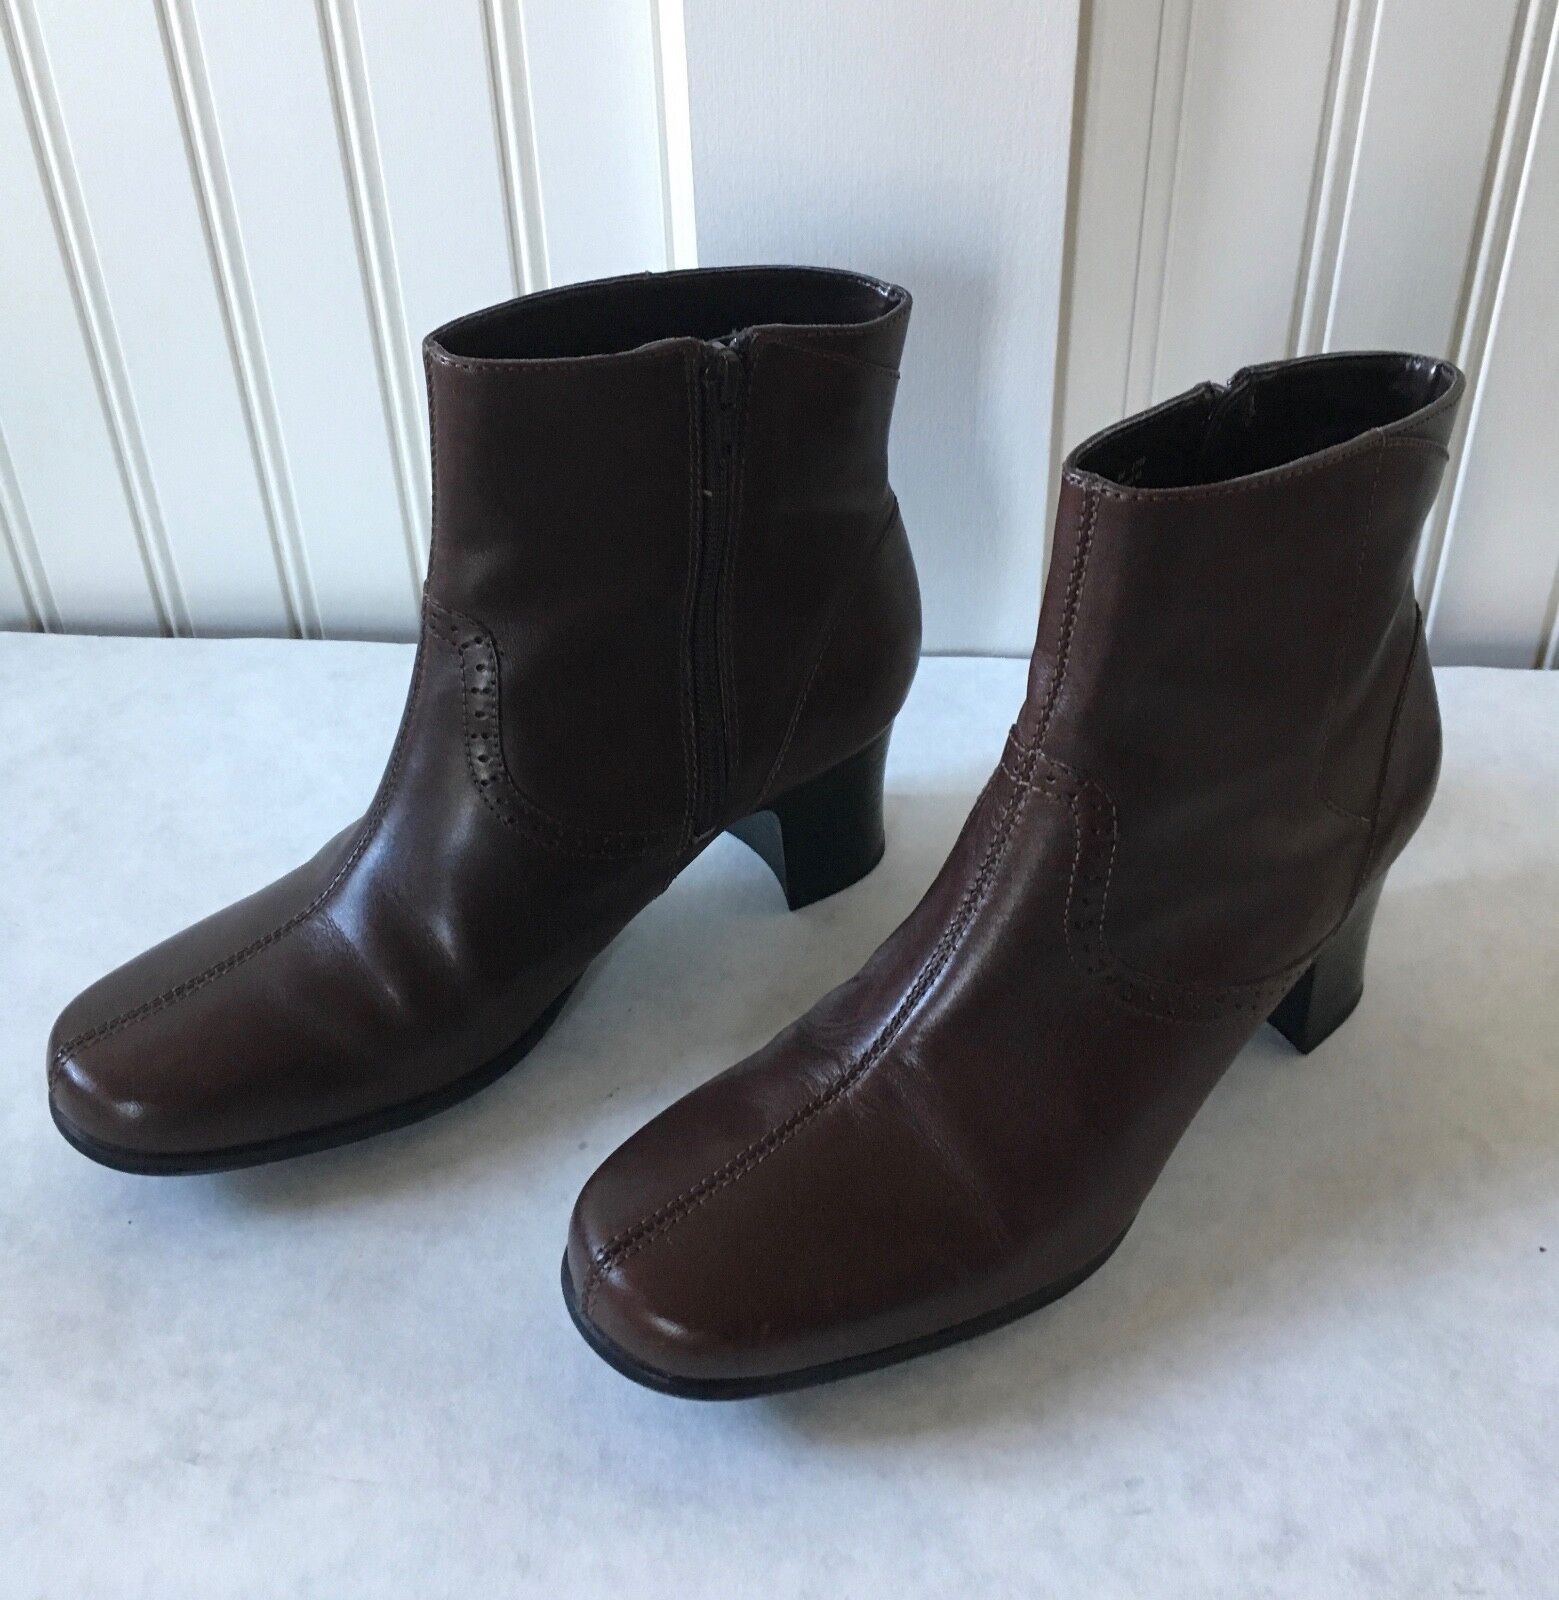 Clarks Women's Short Boots Size 8M, Dark Brown, Excellent Condition